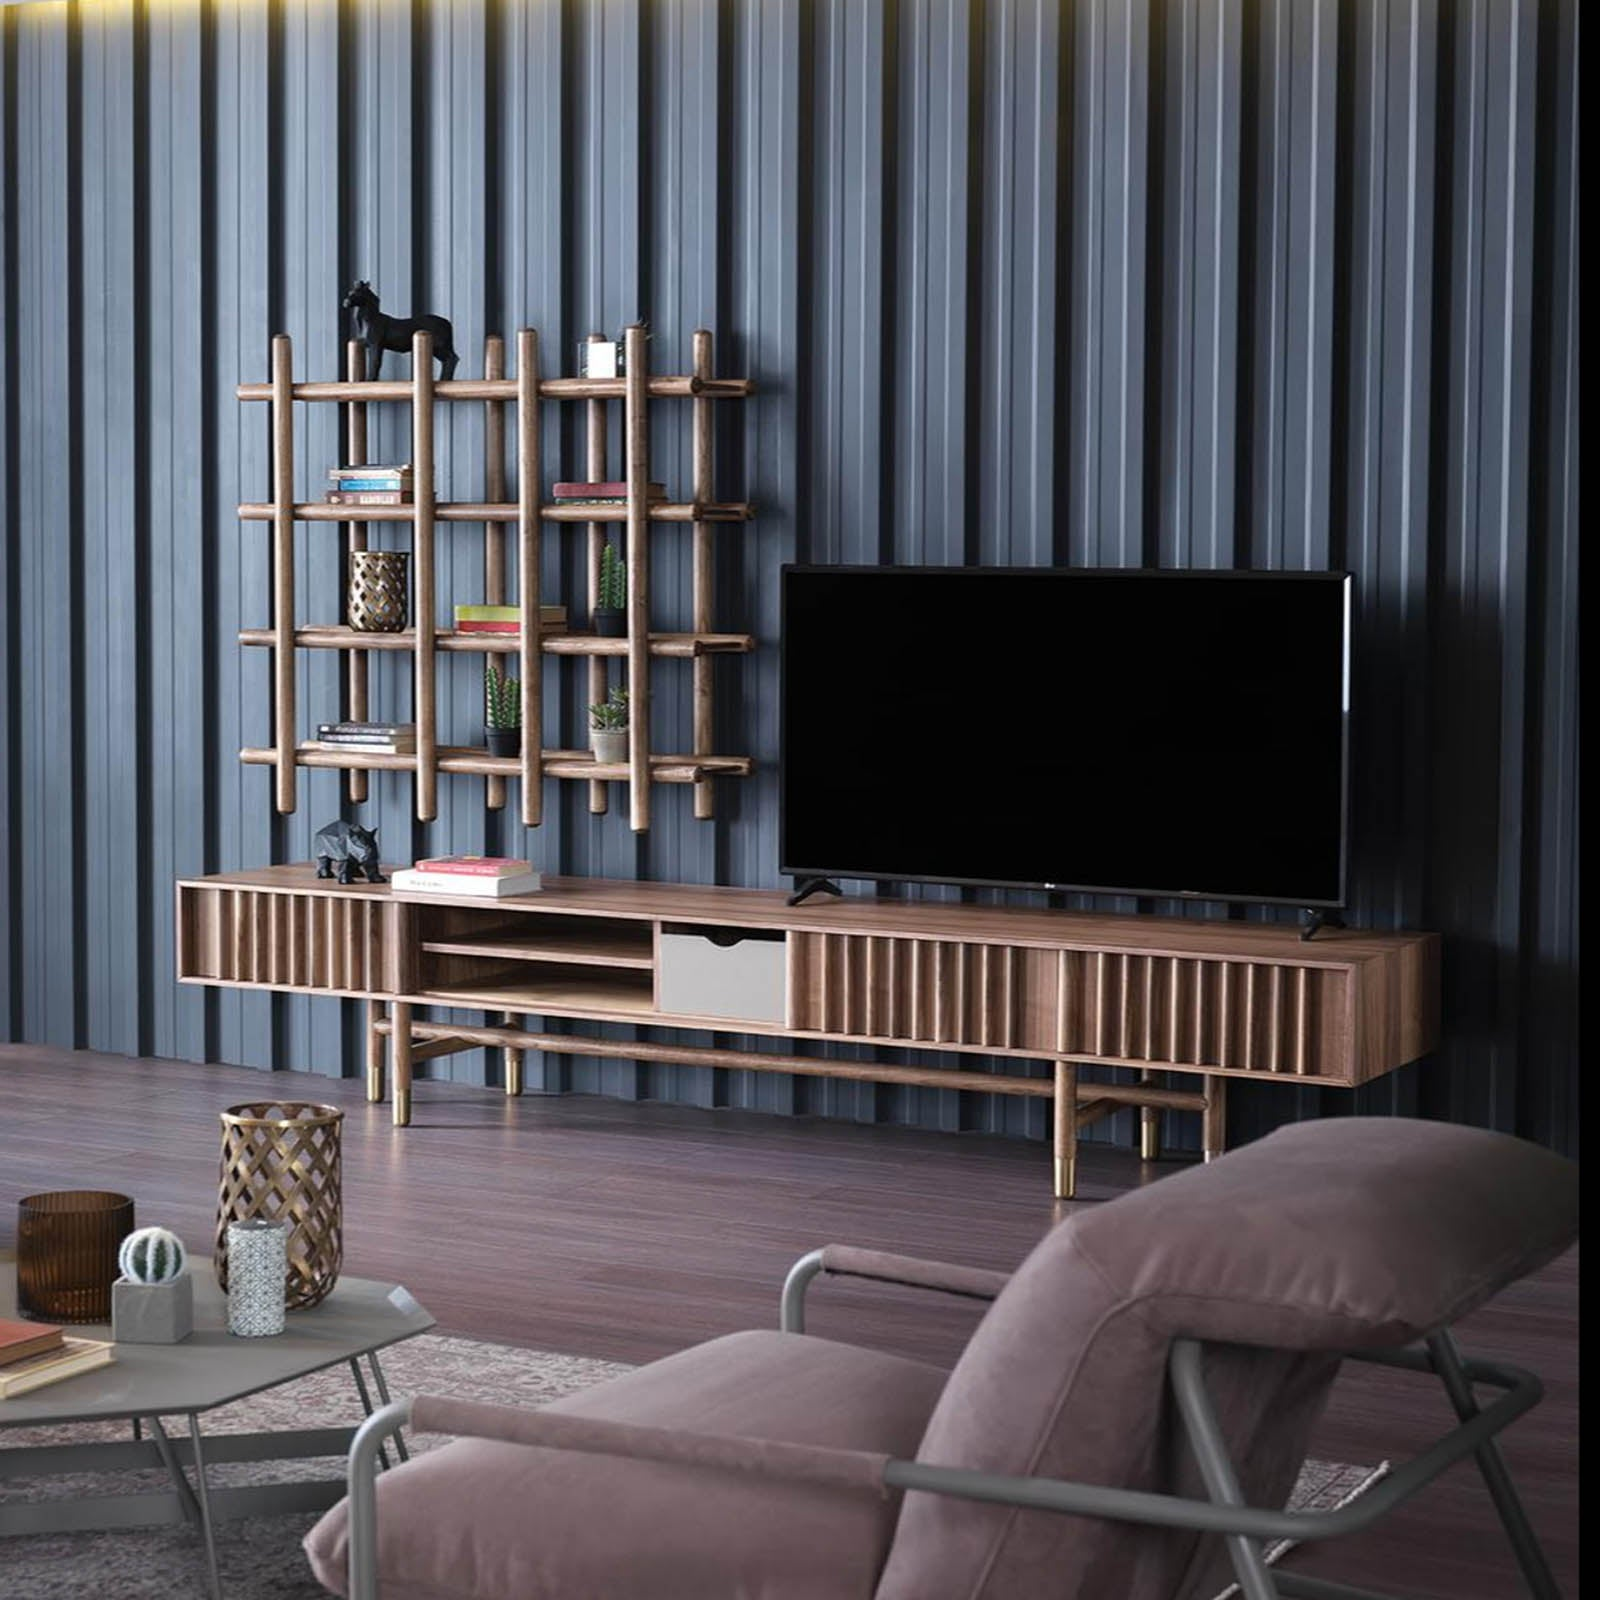 PIETRA TV unit  PIETRATV -  طاوله تلفاز من بيترا - Shop Online Furniture and Home Decor Store in Dubai, UAE at ebarza